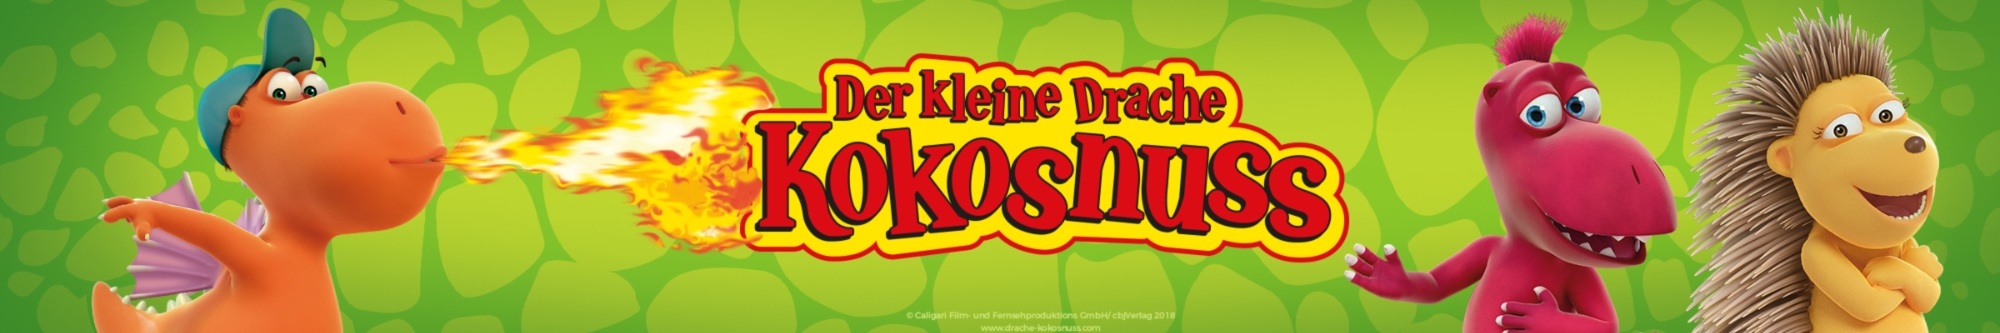 Showroom - Der kleine Drache Kokosnuss